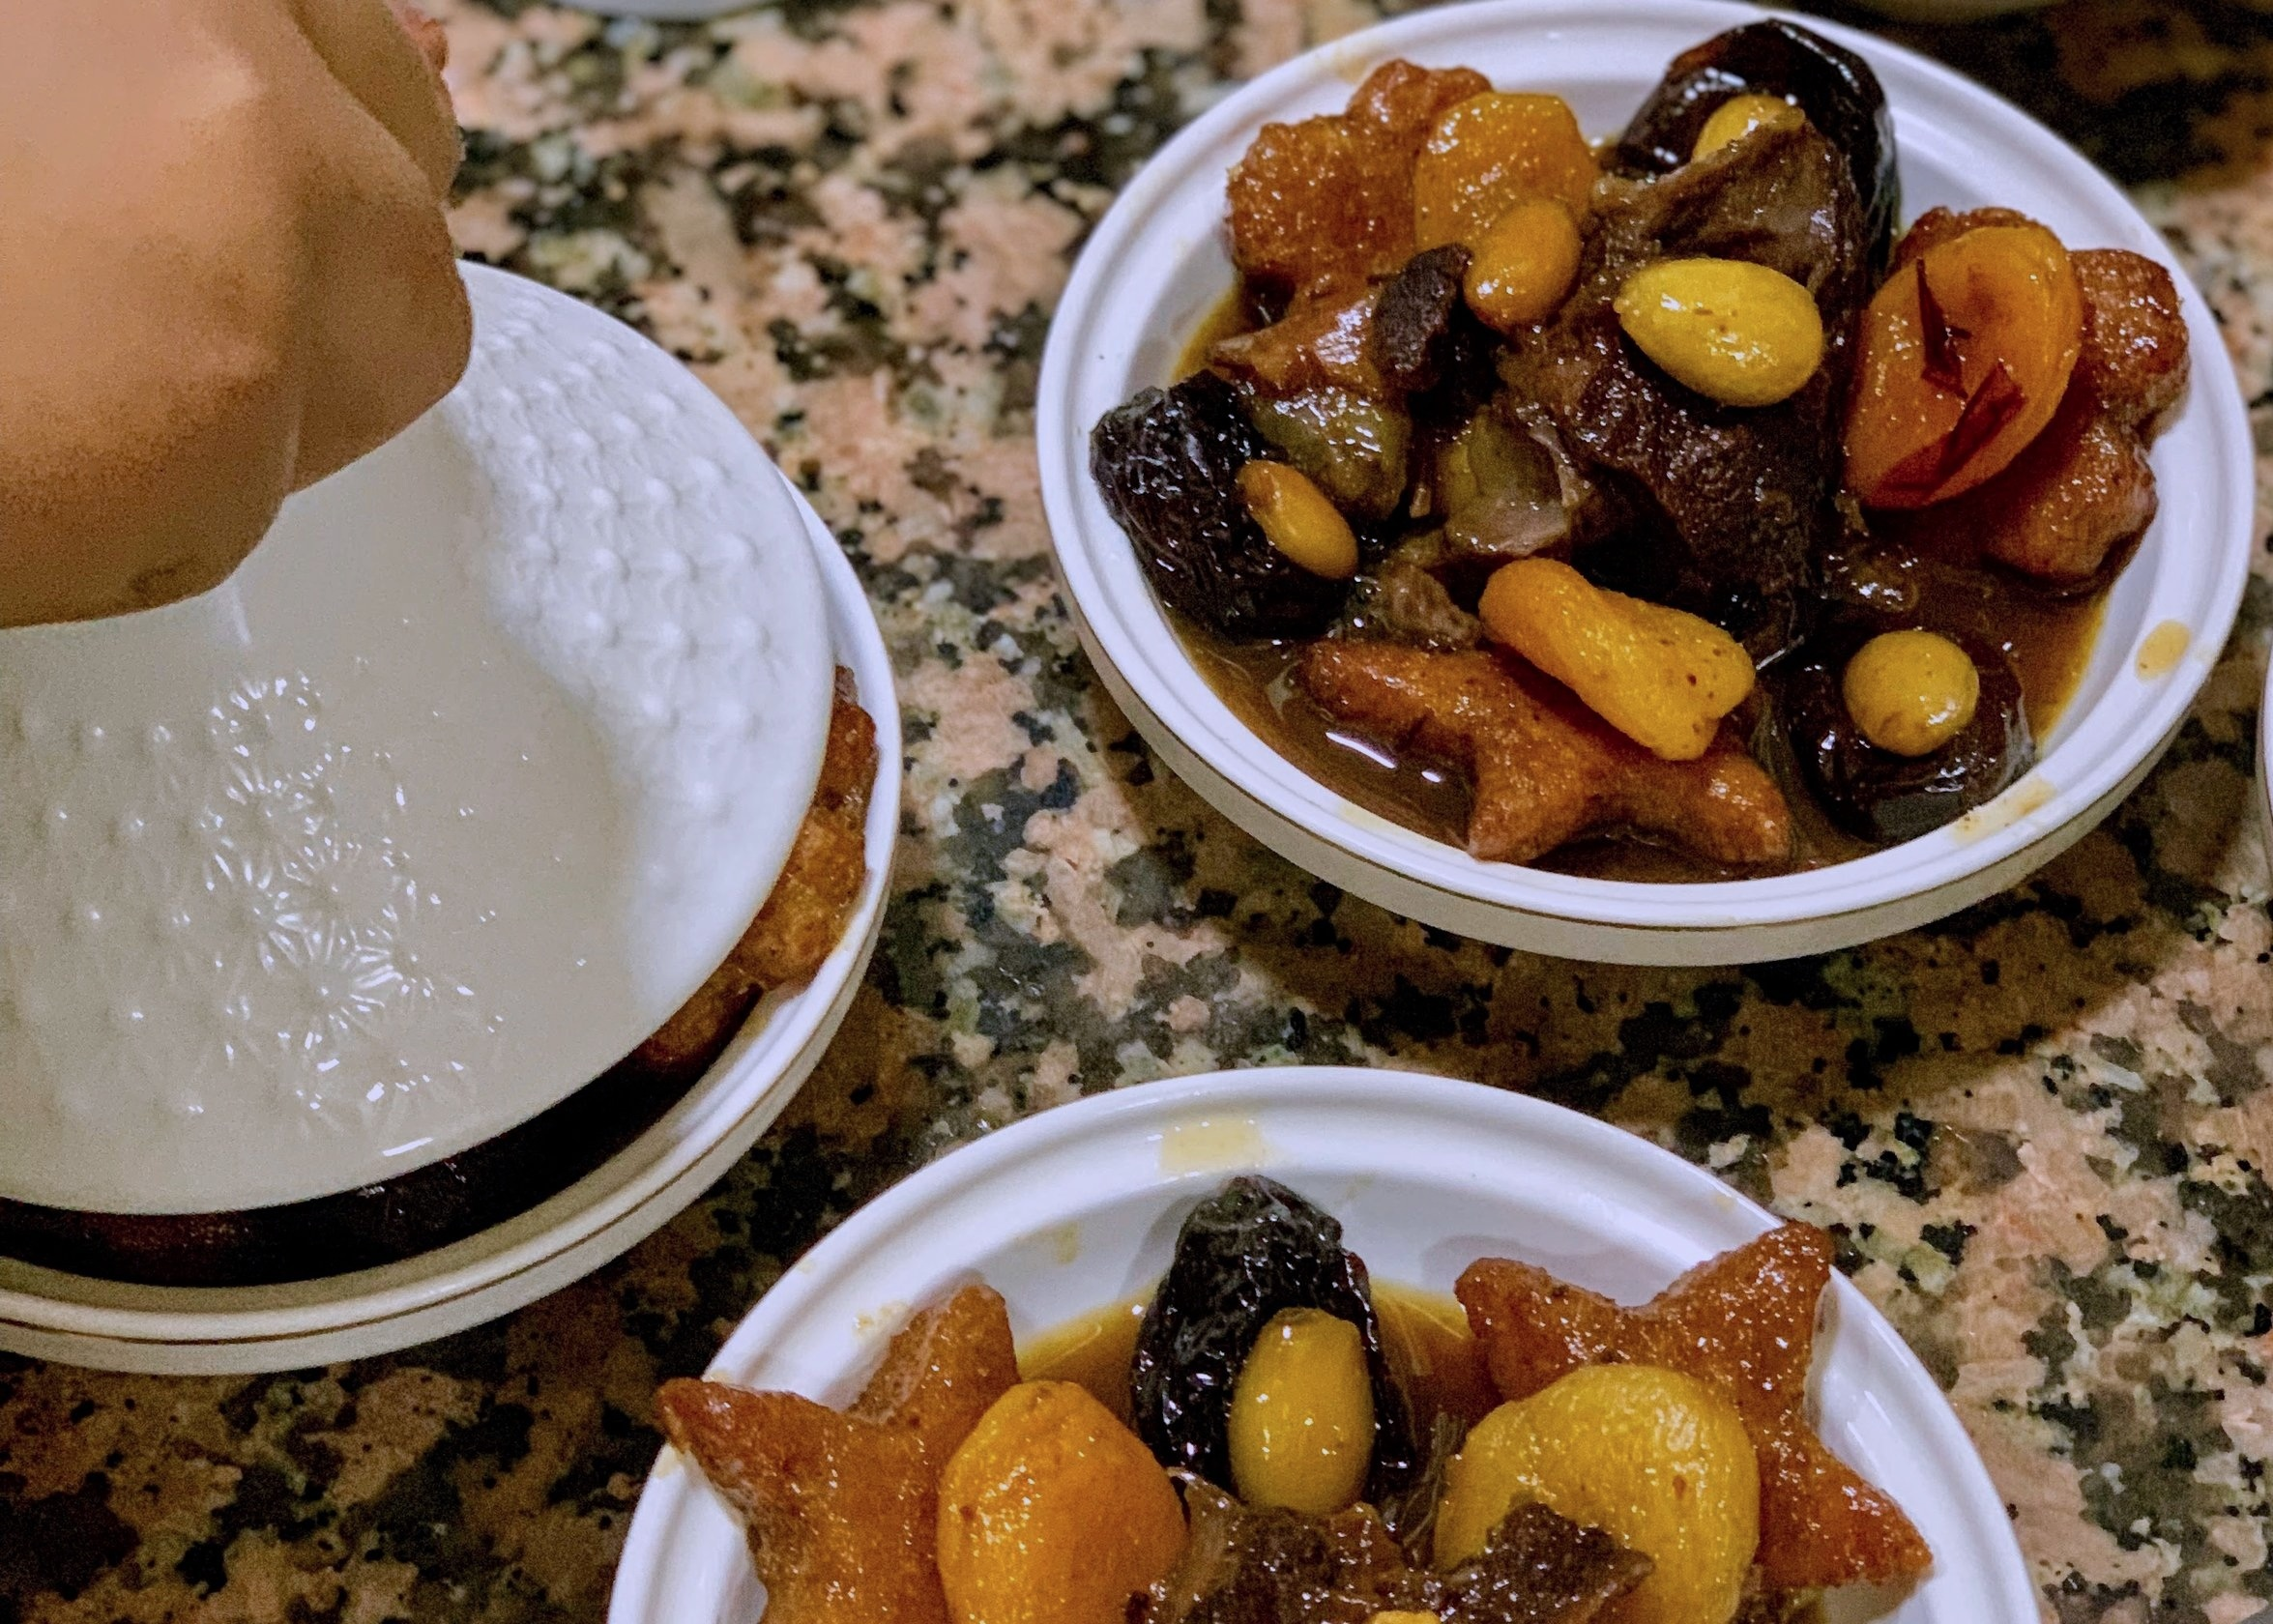 Algerian delicacy - this picture was taken in an Algerian kitchen in 2018. The tagine was prepared as part of a goodbye dinner for an honored guest and a loved one. One more gesture amongst many of the love of an aunt towards her niece.